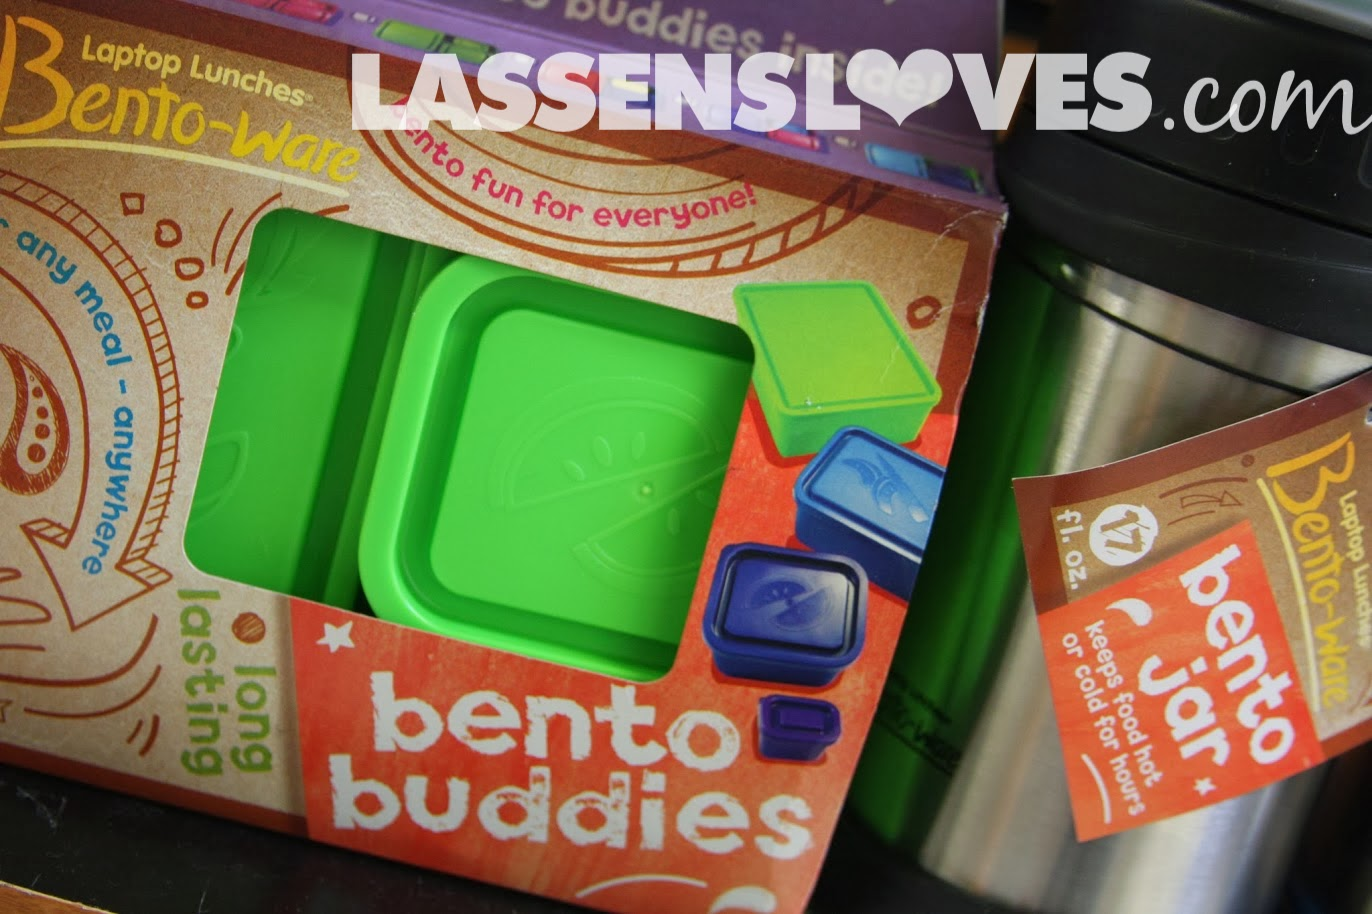 lassensloves.com, Lassen's, Lassens, healthy+lunches, lunch+ideas, lunch+rolls, lunch+pockets, lunch+boxes